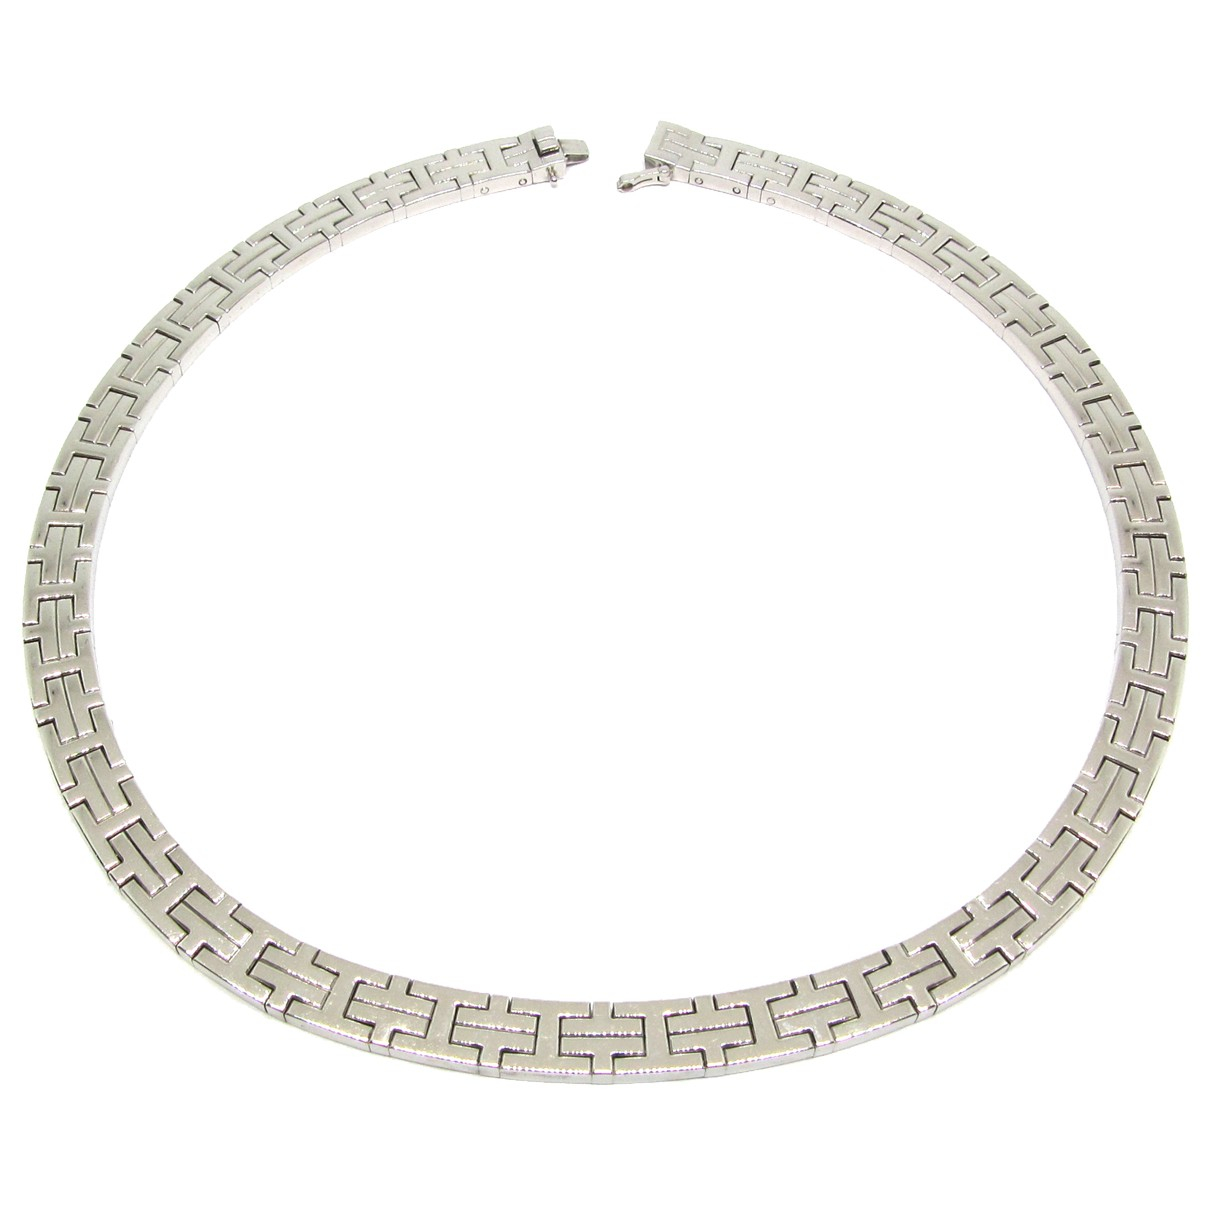 Hermès \N White gold necklace for Women \N